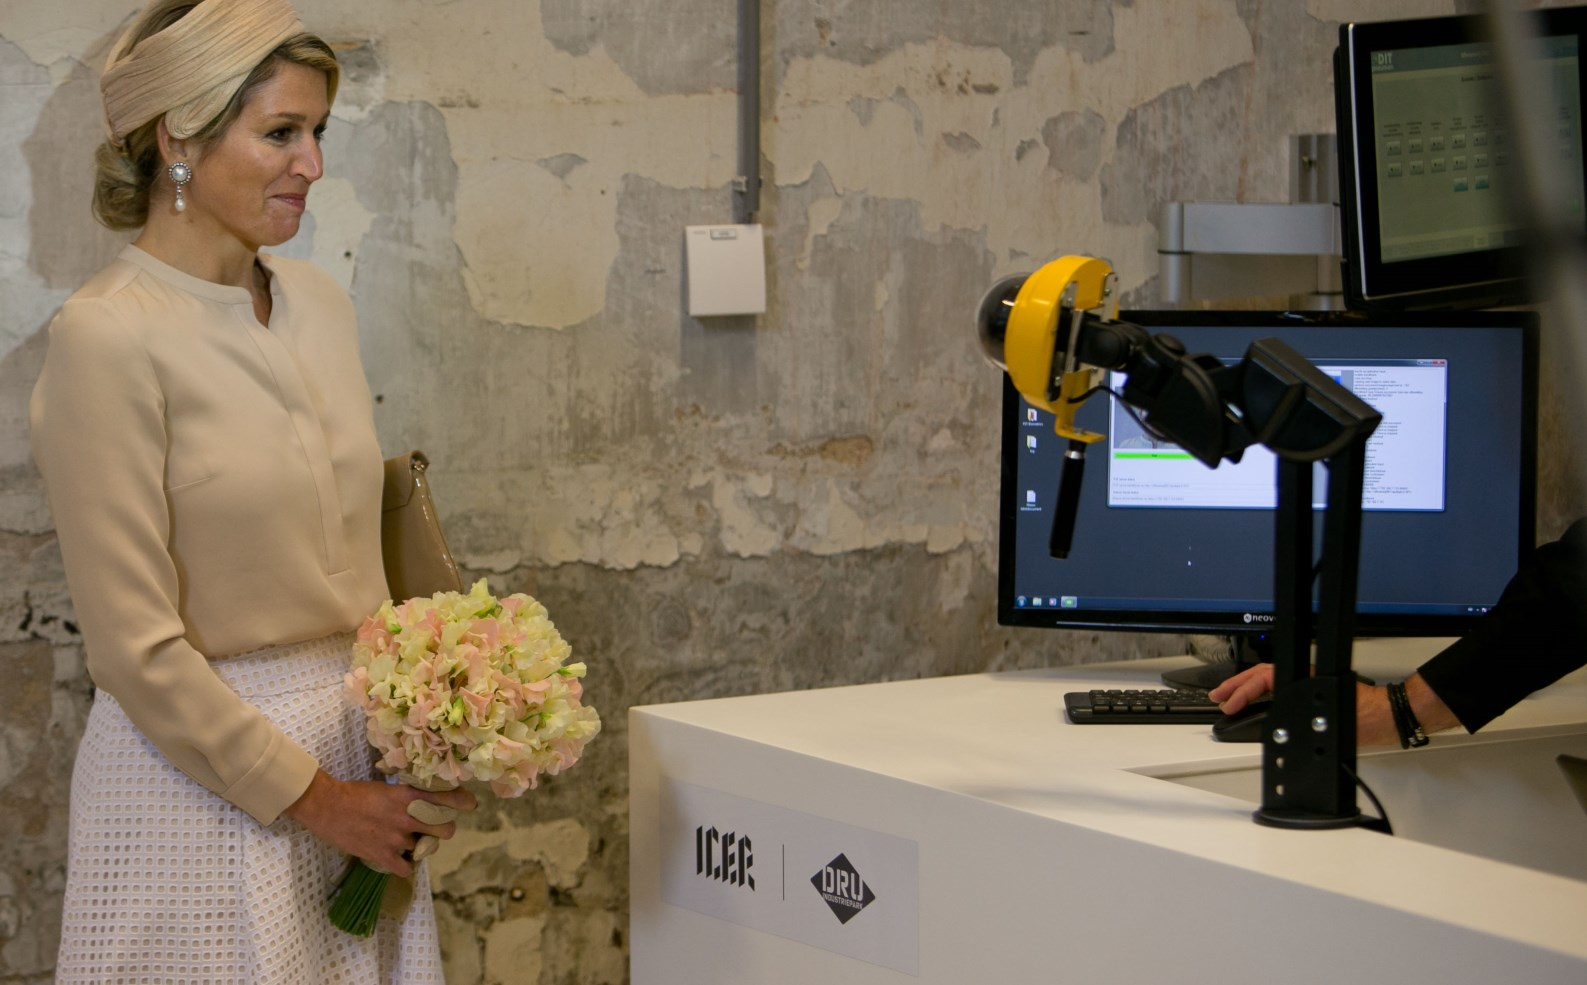 Queen Máxima of the Netherlands at a facial recognition station in the ICER Innovation Center in Holland, which employs FST's In Motion Identification technology to give visitors personalized information about exhibits as they pass through interactive checkpoints. Photo courtesy of ICER.EU